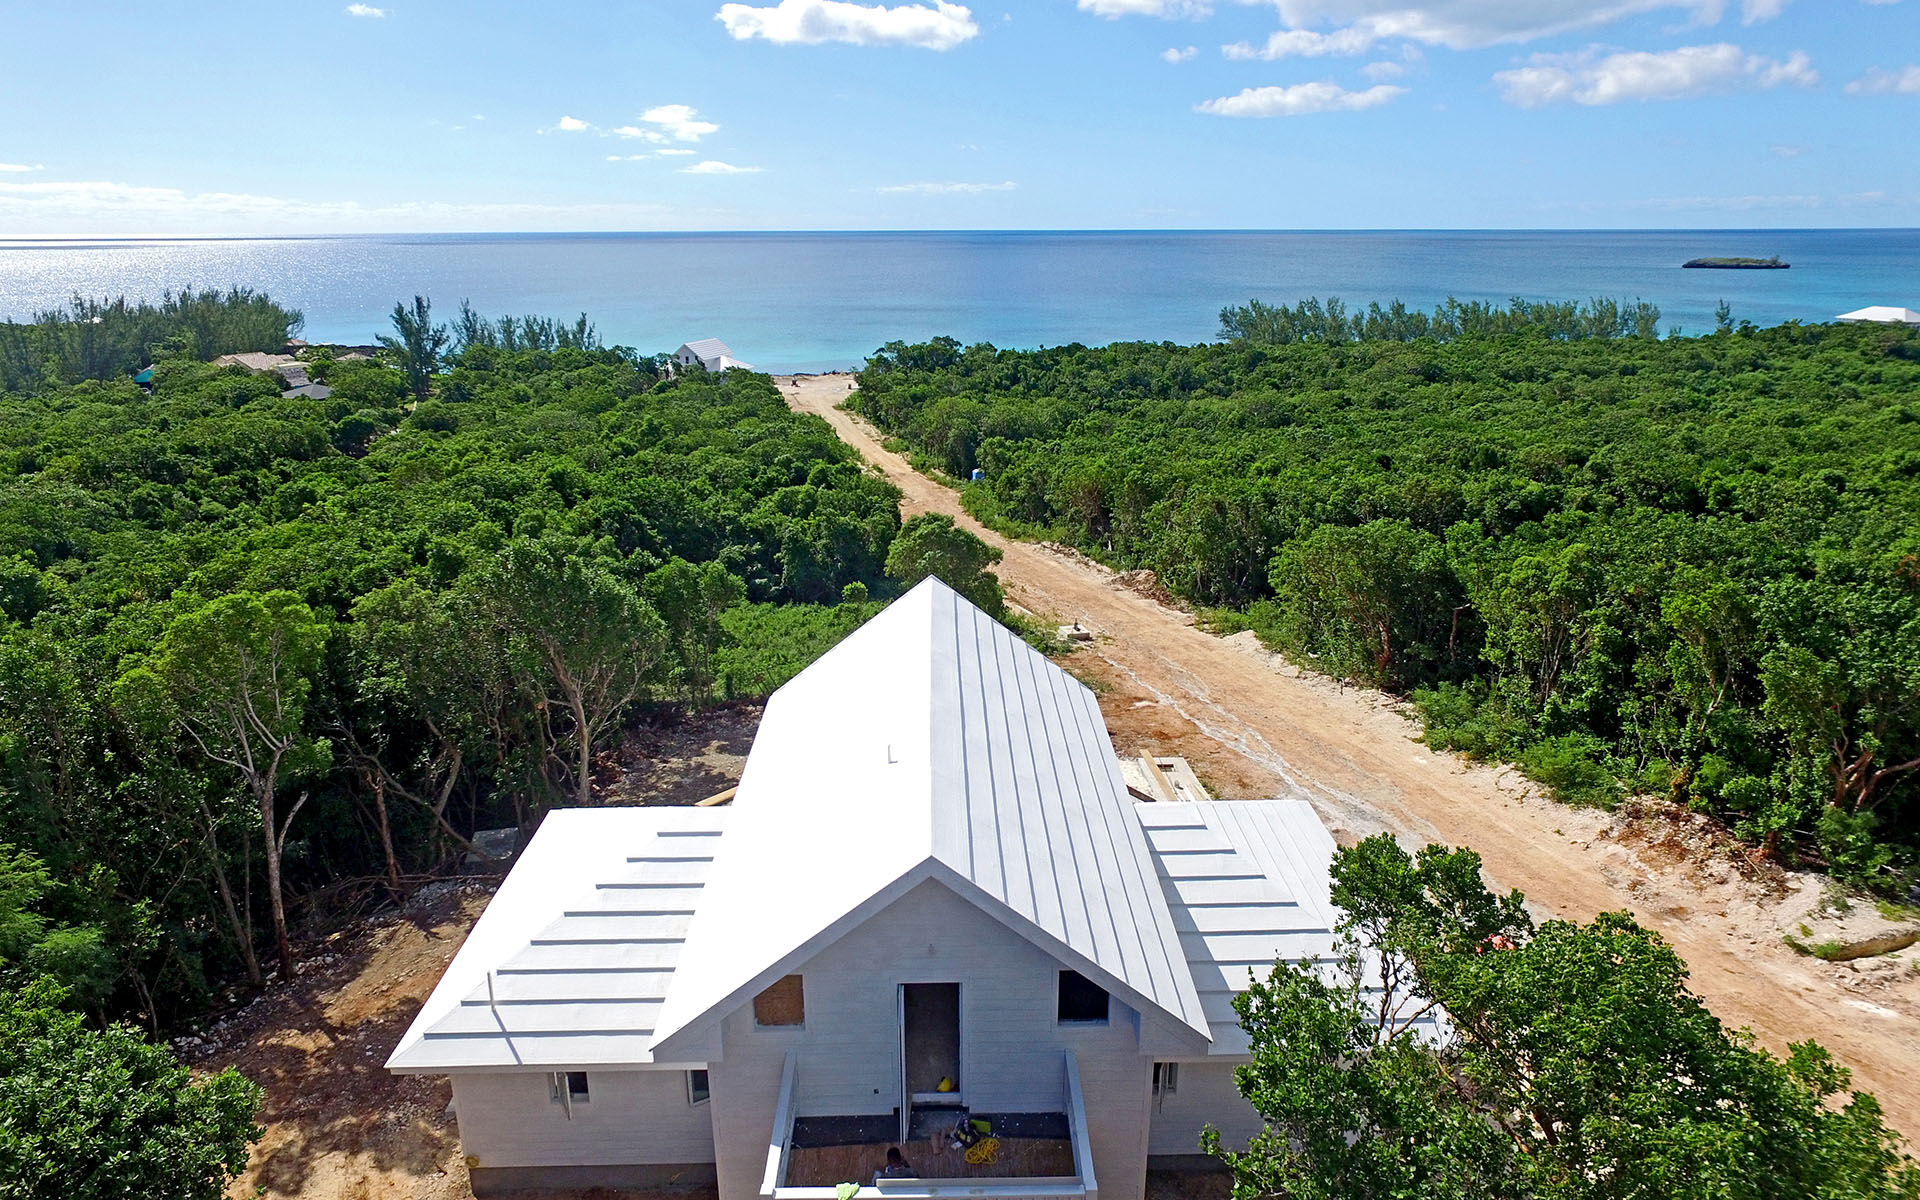 Single Family Home for Sale at Starfall at Turtle Bay, Governor's Harbour MLS 28709 Governors Harbour, Eleuthera, Bahamas